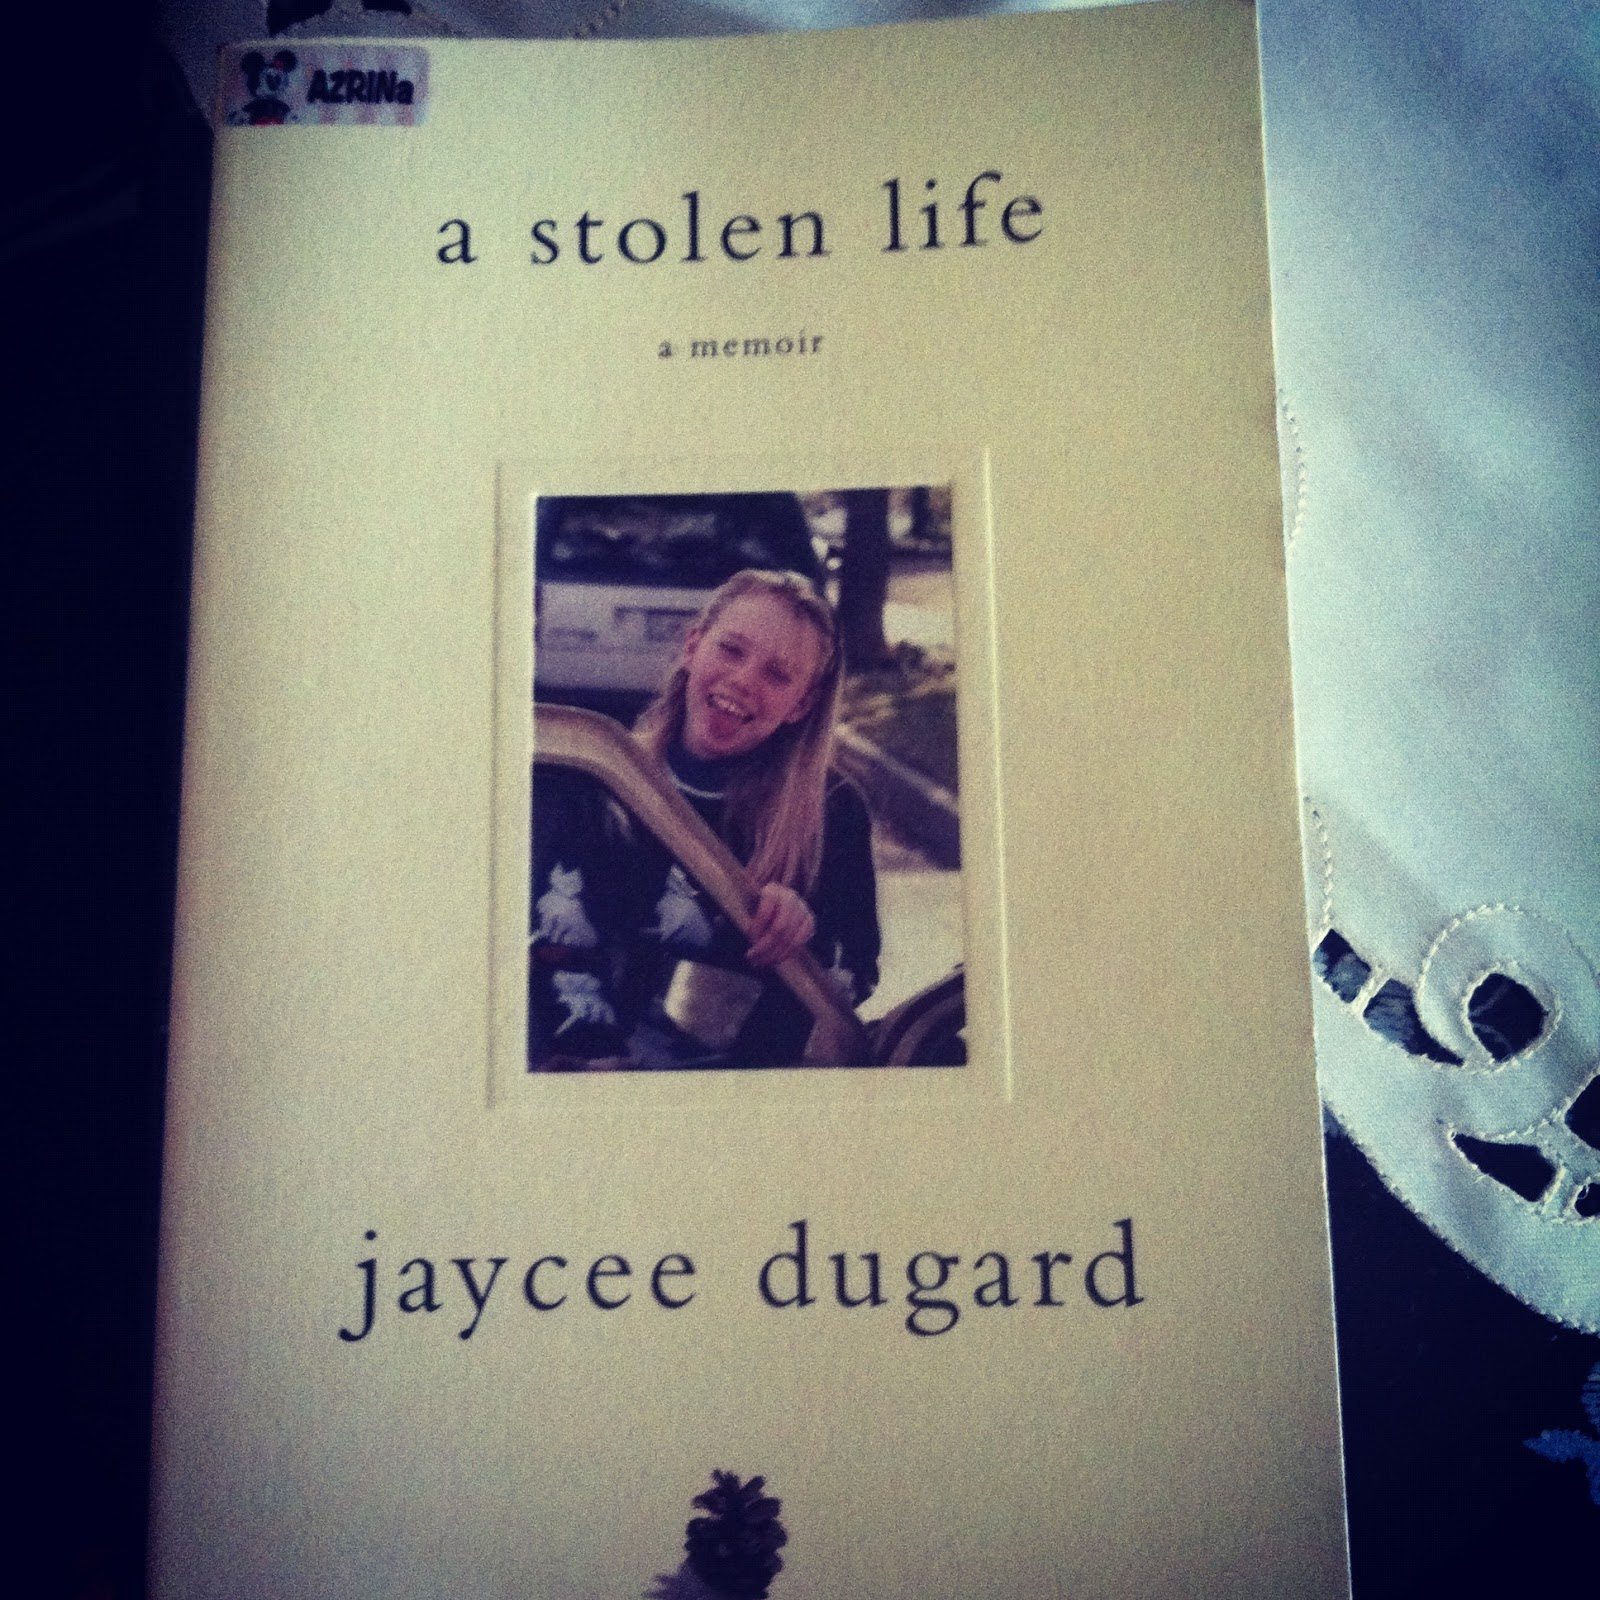 a stolen life A stolen life a memoir  certainly responsible for stealing my life and the life i  should have had  reading this would find the answer for me, but i am beginning  to.